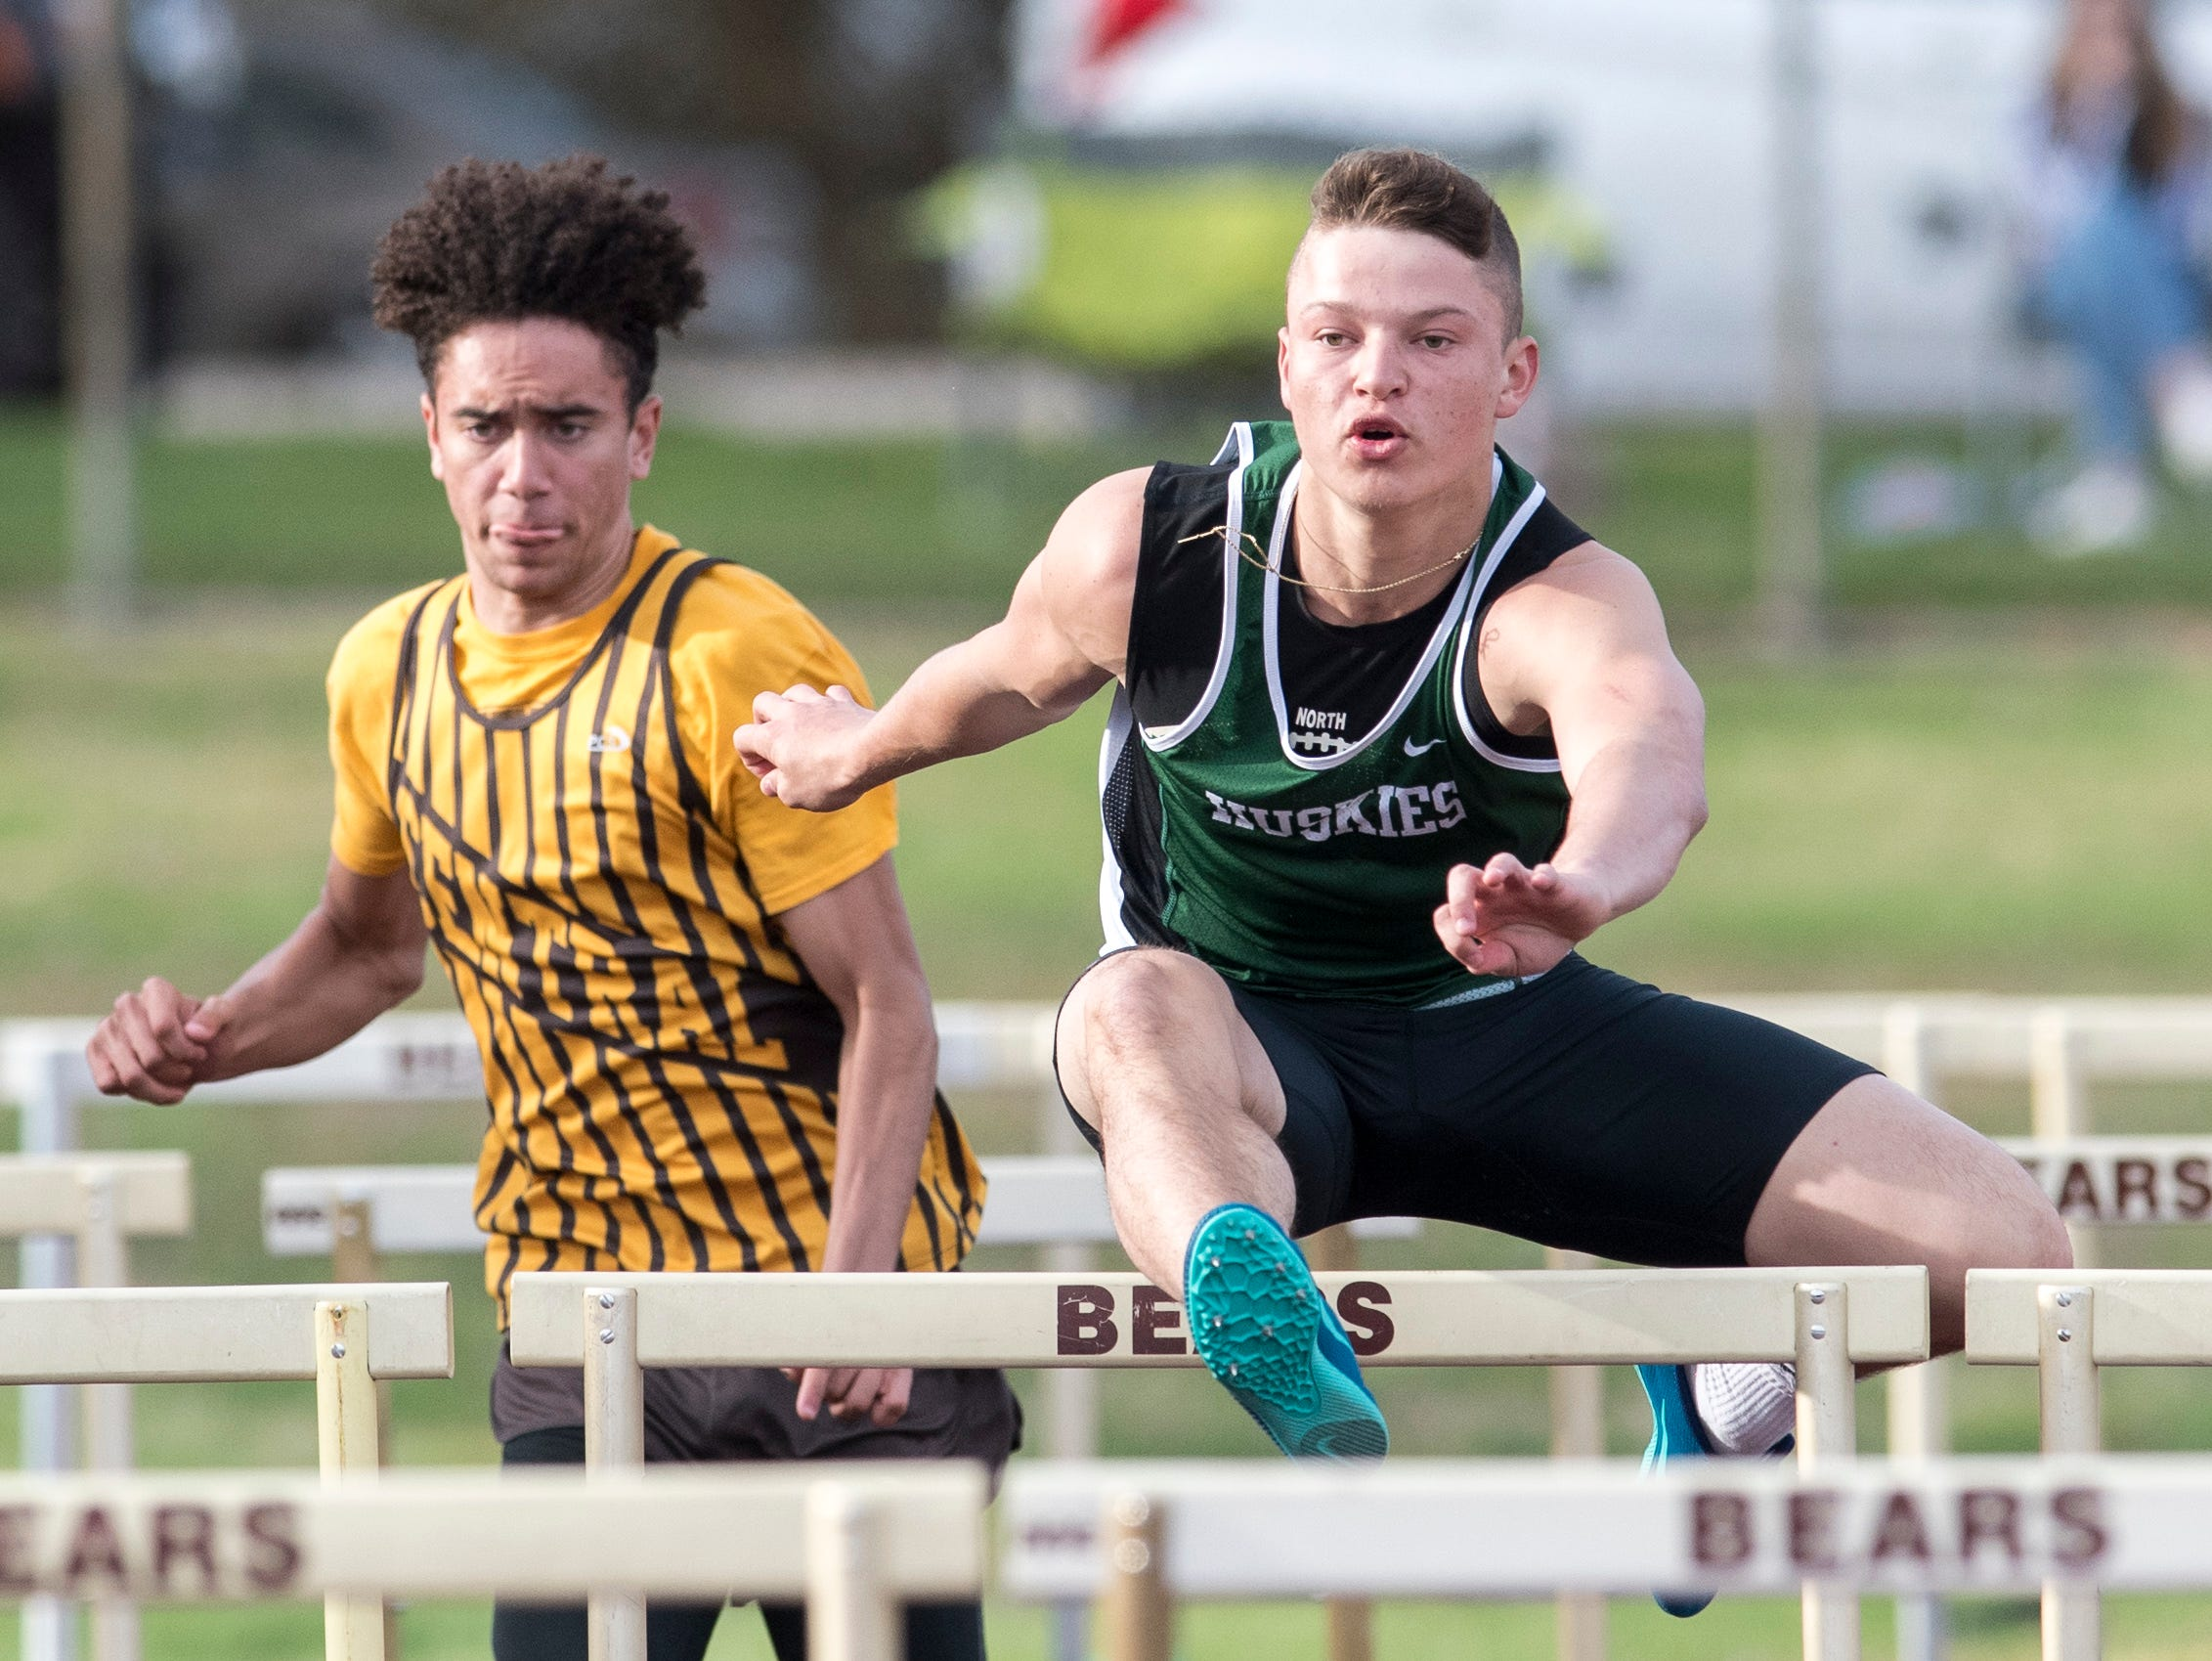 North's Dylan McKinney clears a hurdle in the boys 110m high hurdle event during the 2019 City Track and Field meet atCentral High School Friday, April 12, 2019.  McKinney took first place in the event at 15.7 seconds.